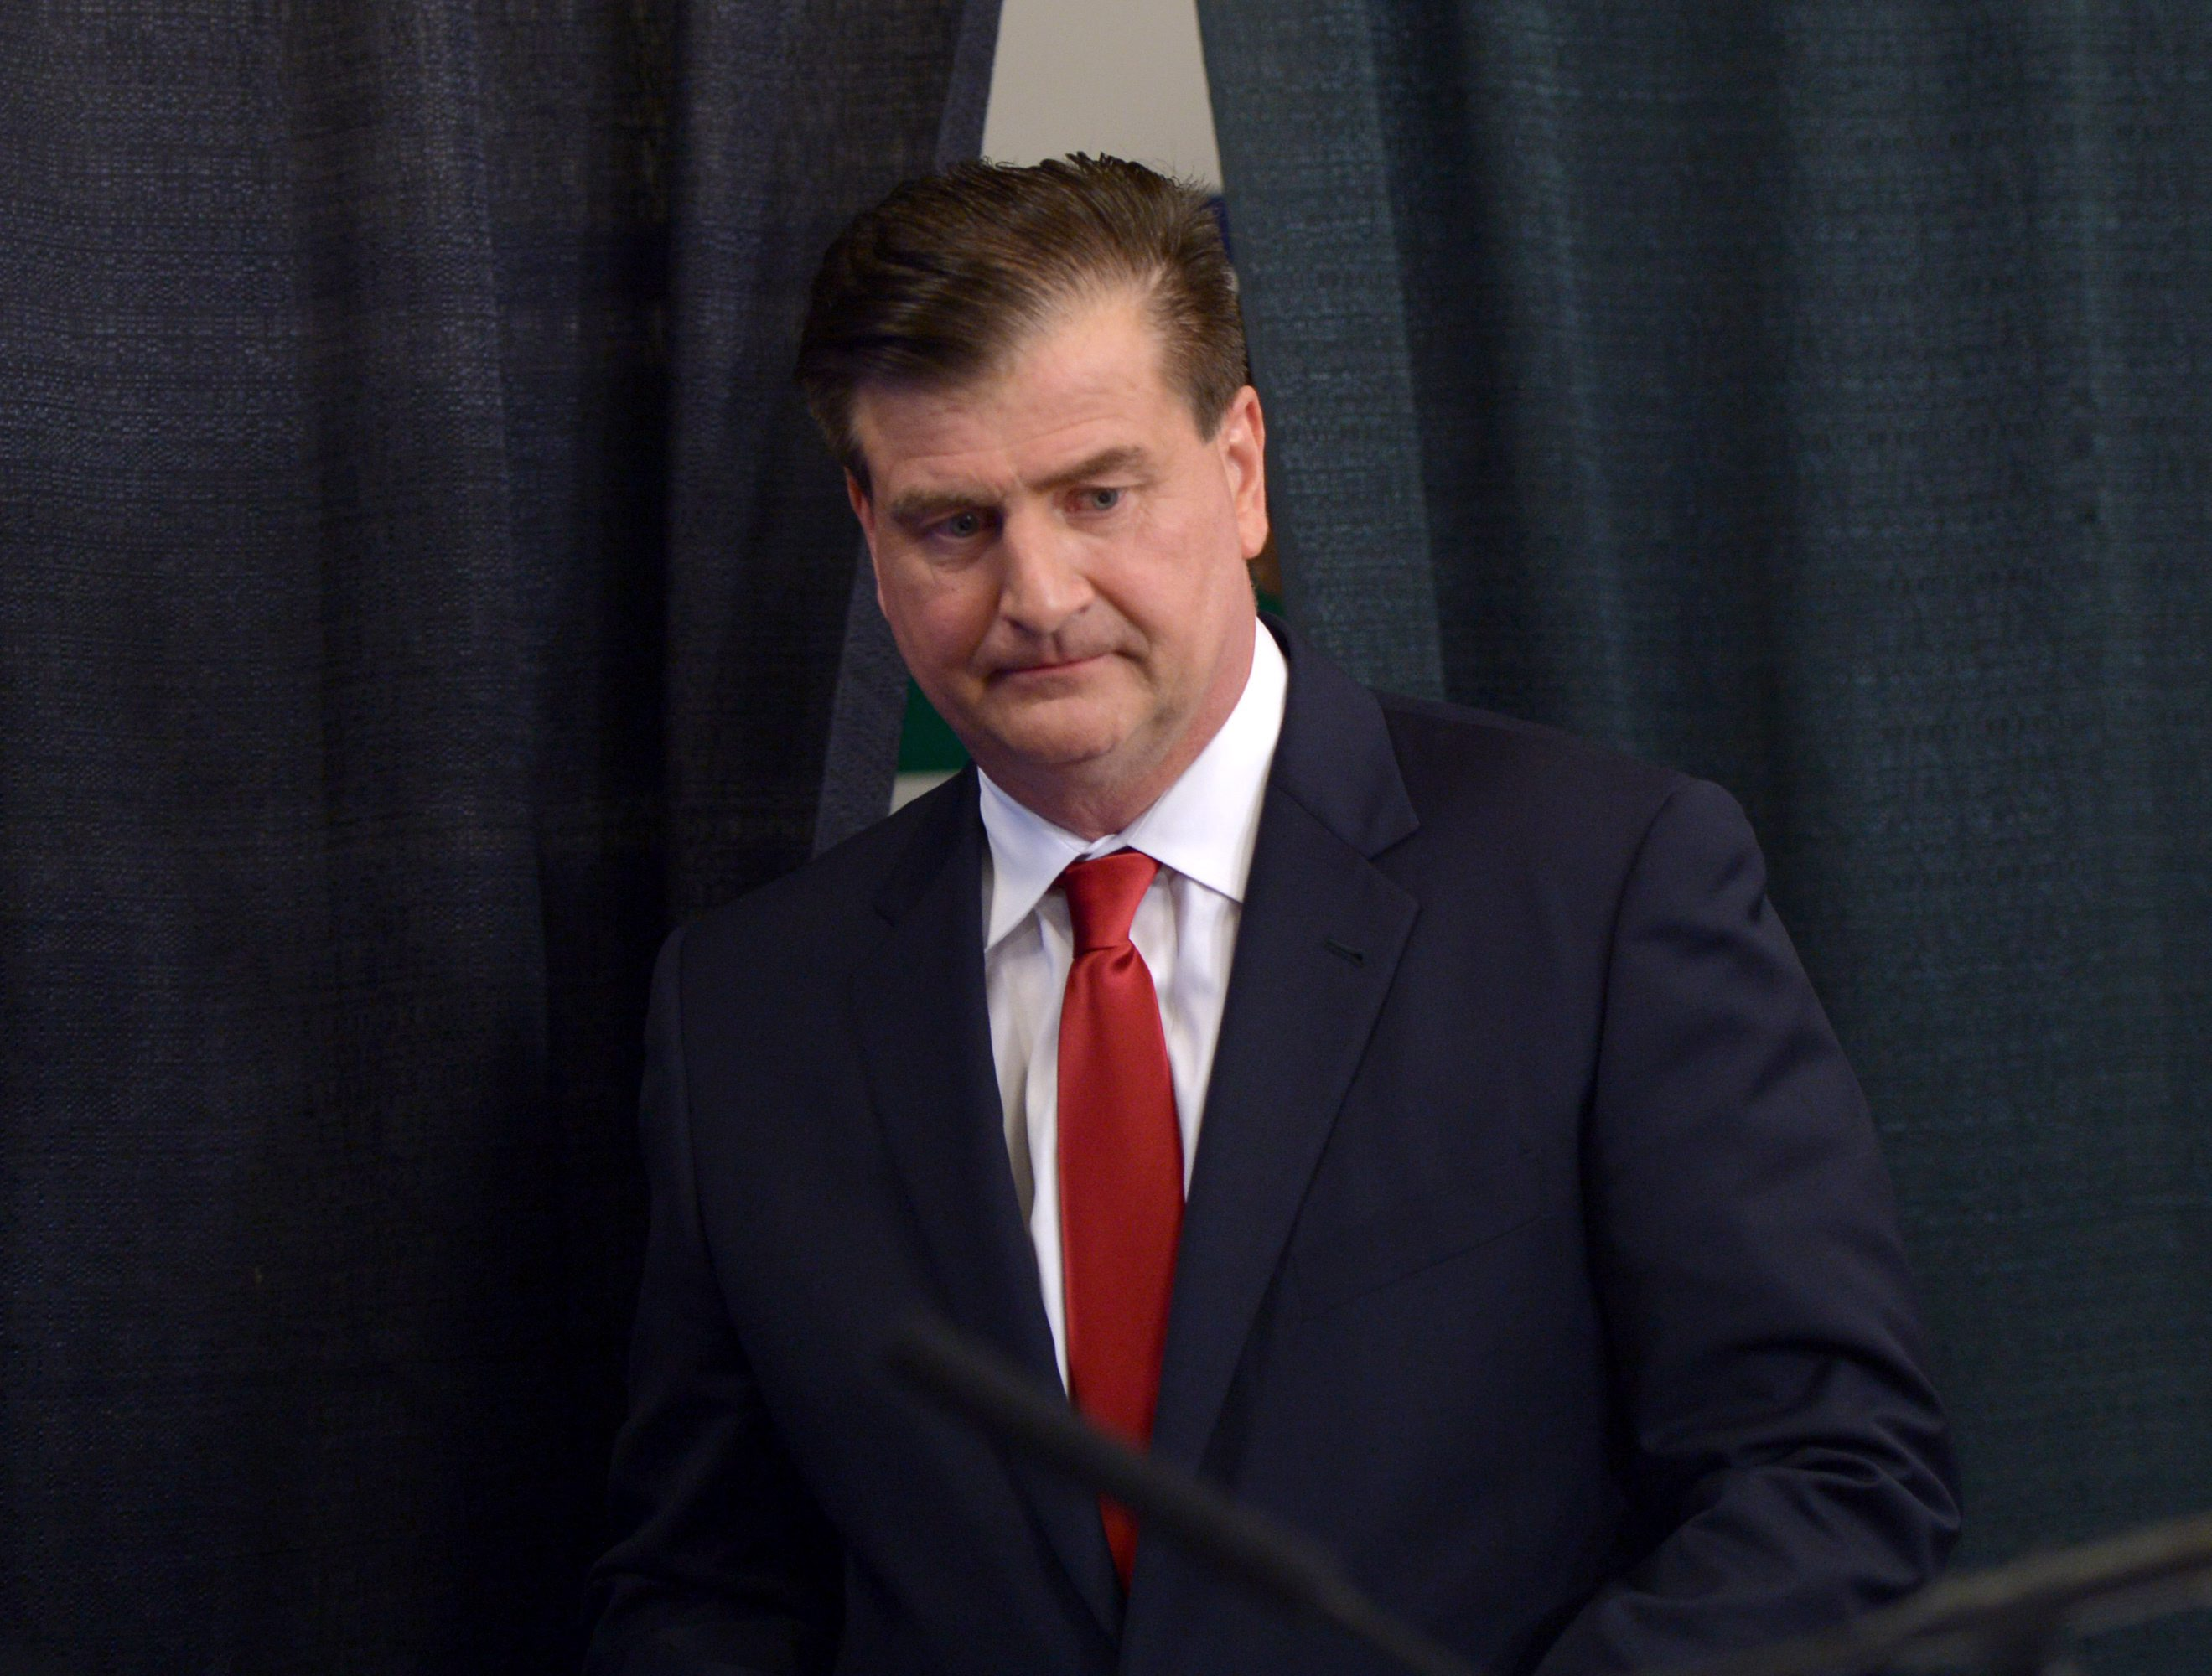 Jim Benning, new general manager of the Vancouver Canucks NHL hockey team, arrives at a news conference in Vancouver, Friday May 23, 2014. (AP Photo/The Canadian Press, Jonathan Hayward)